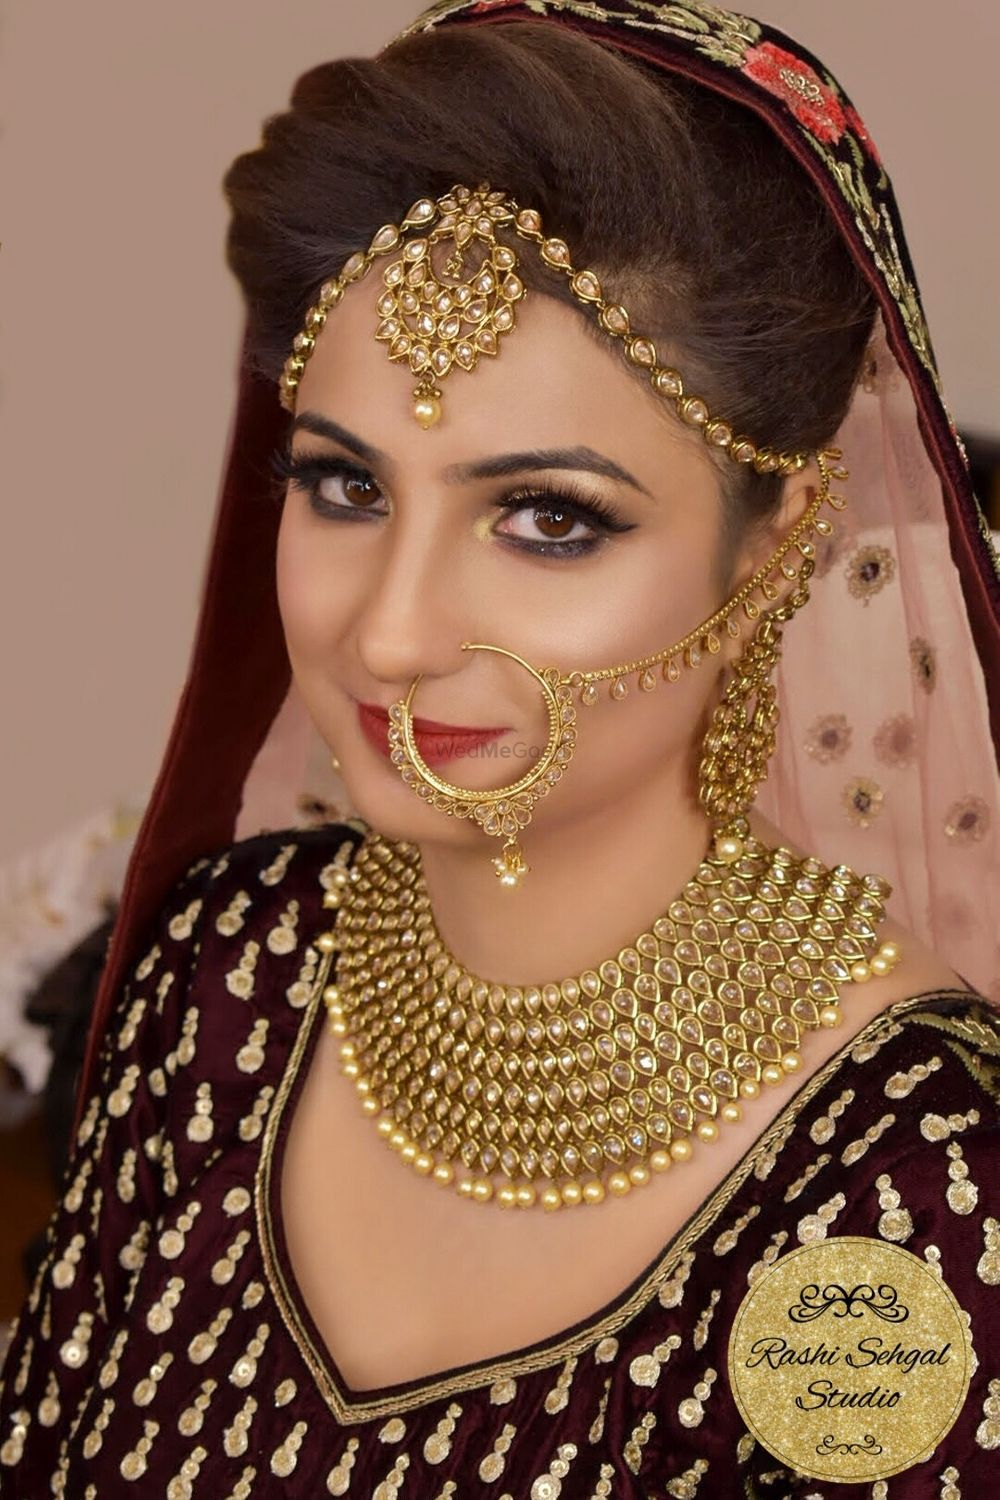 Photo From BRIDE PRERNA - By Rashi Sehgal Official